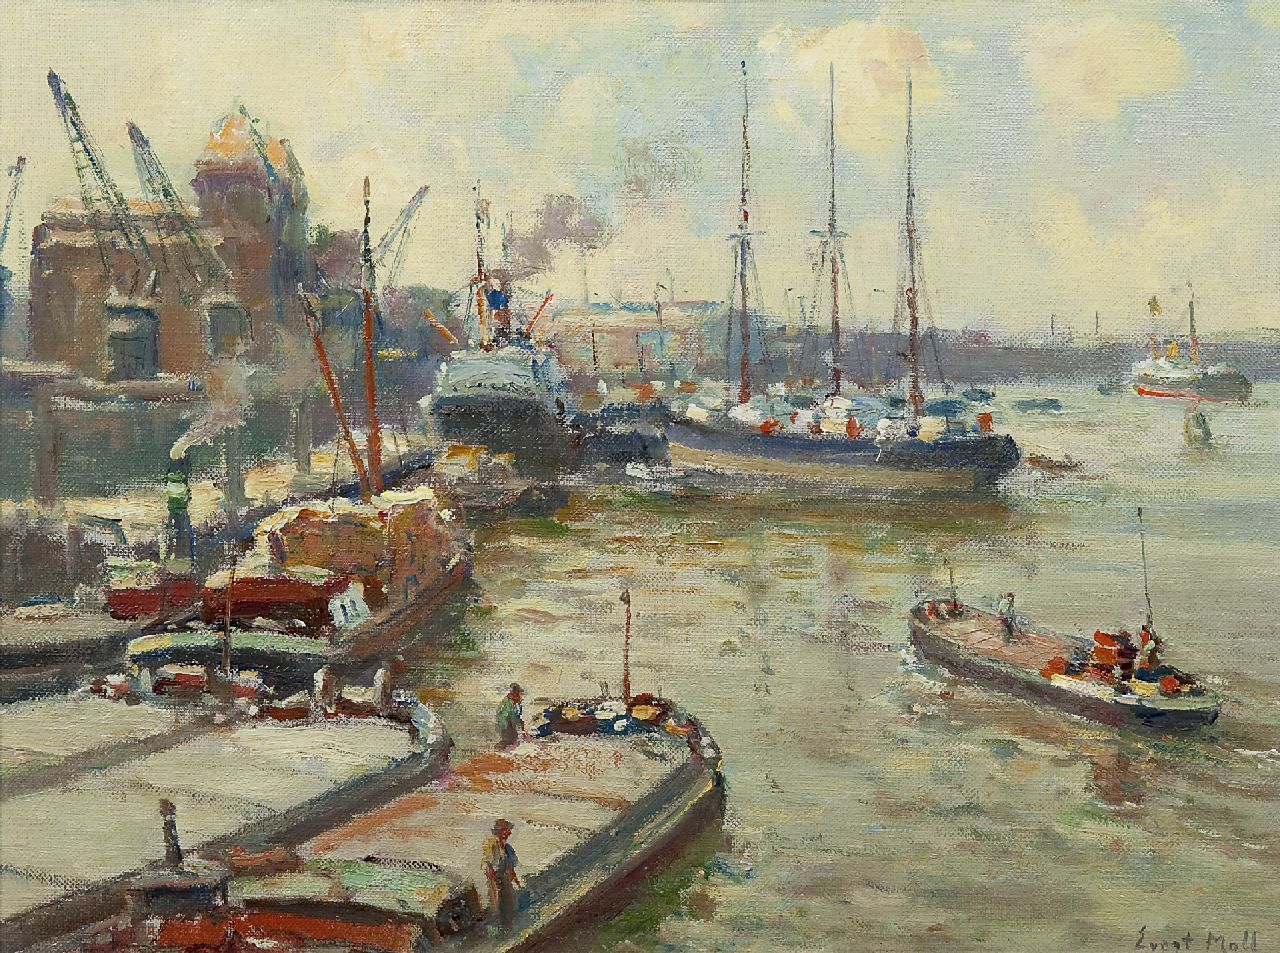 Moll E.  | Evert Moll, Activity in the Maas harbour, oil on canvas 30.3 x 40.3 cm, signed l.r.